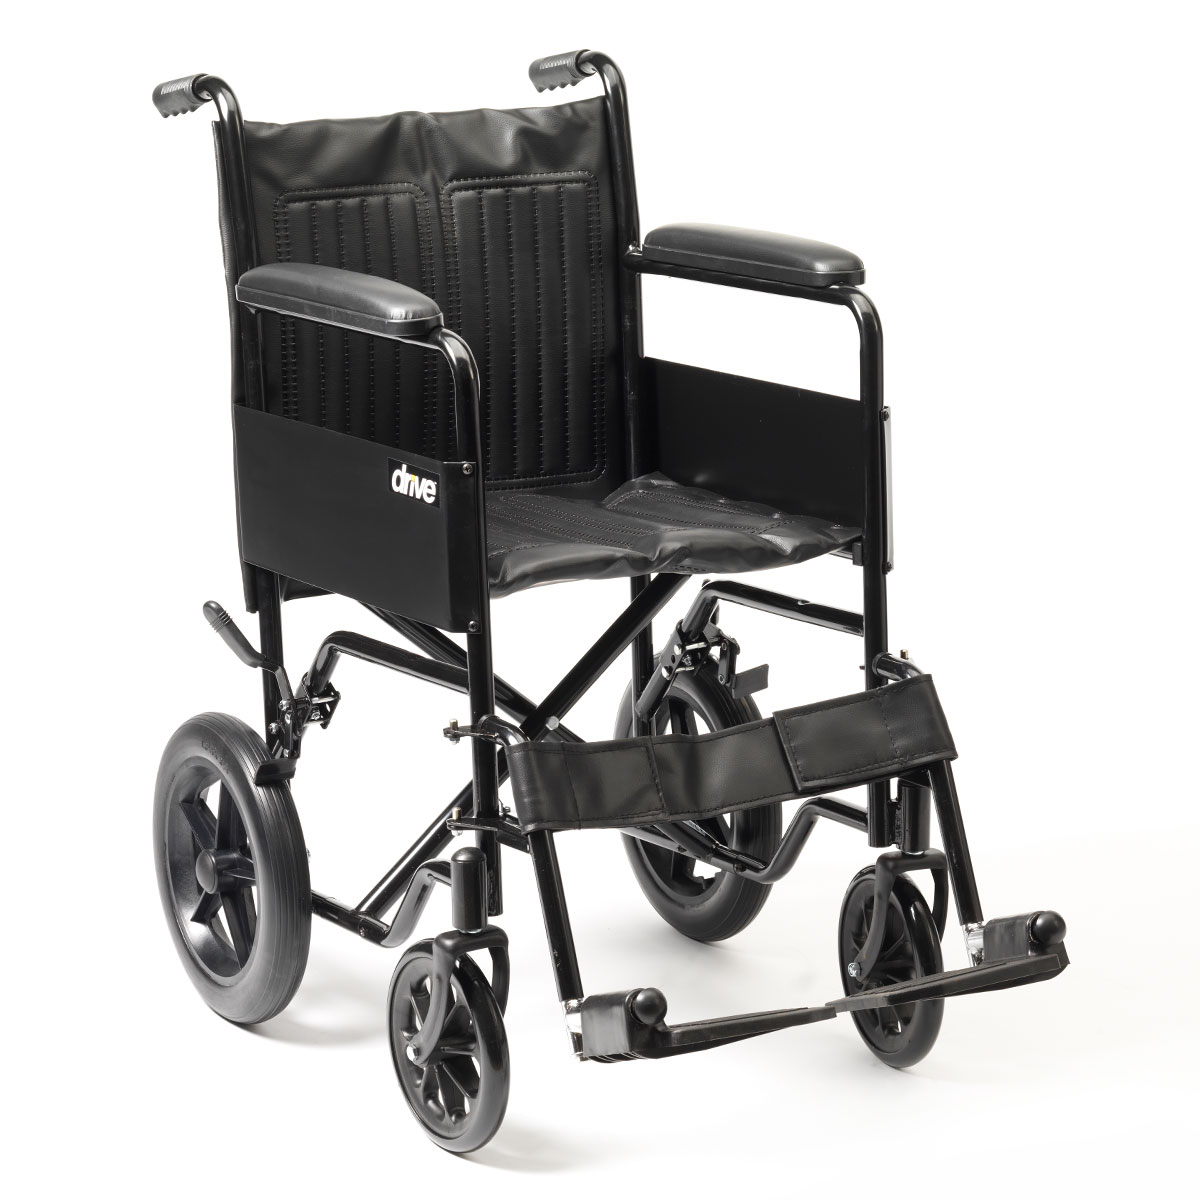 Half Folding Back S1 Self Propel Wheel Chair